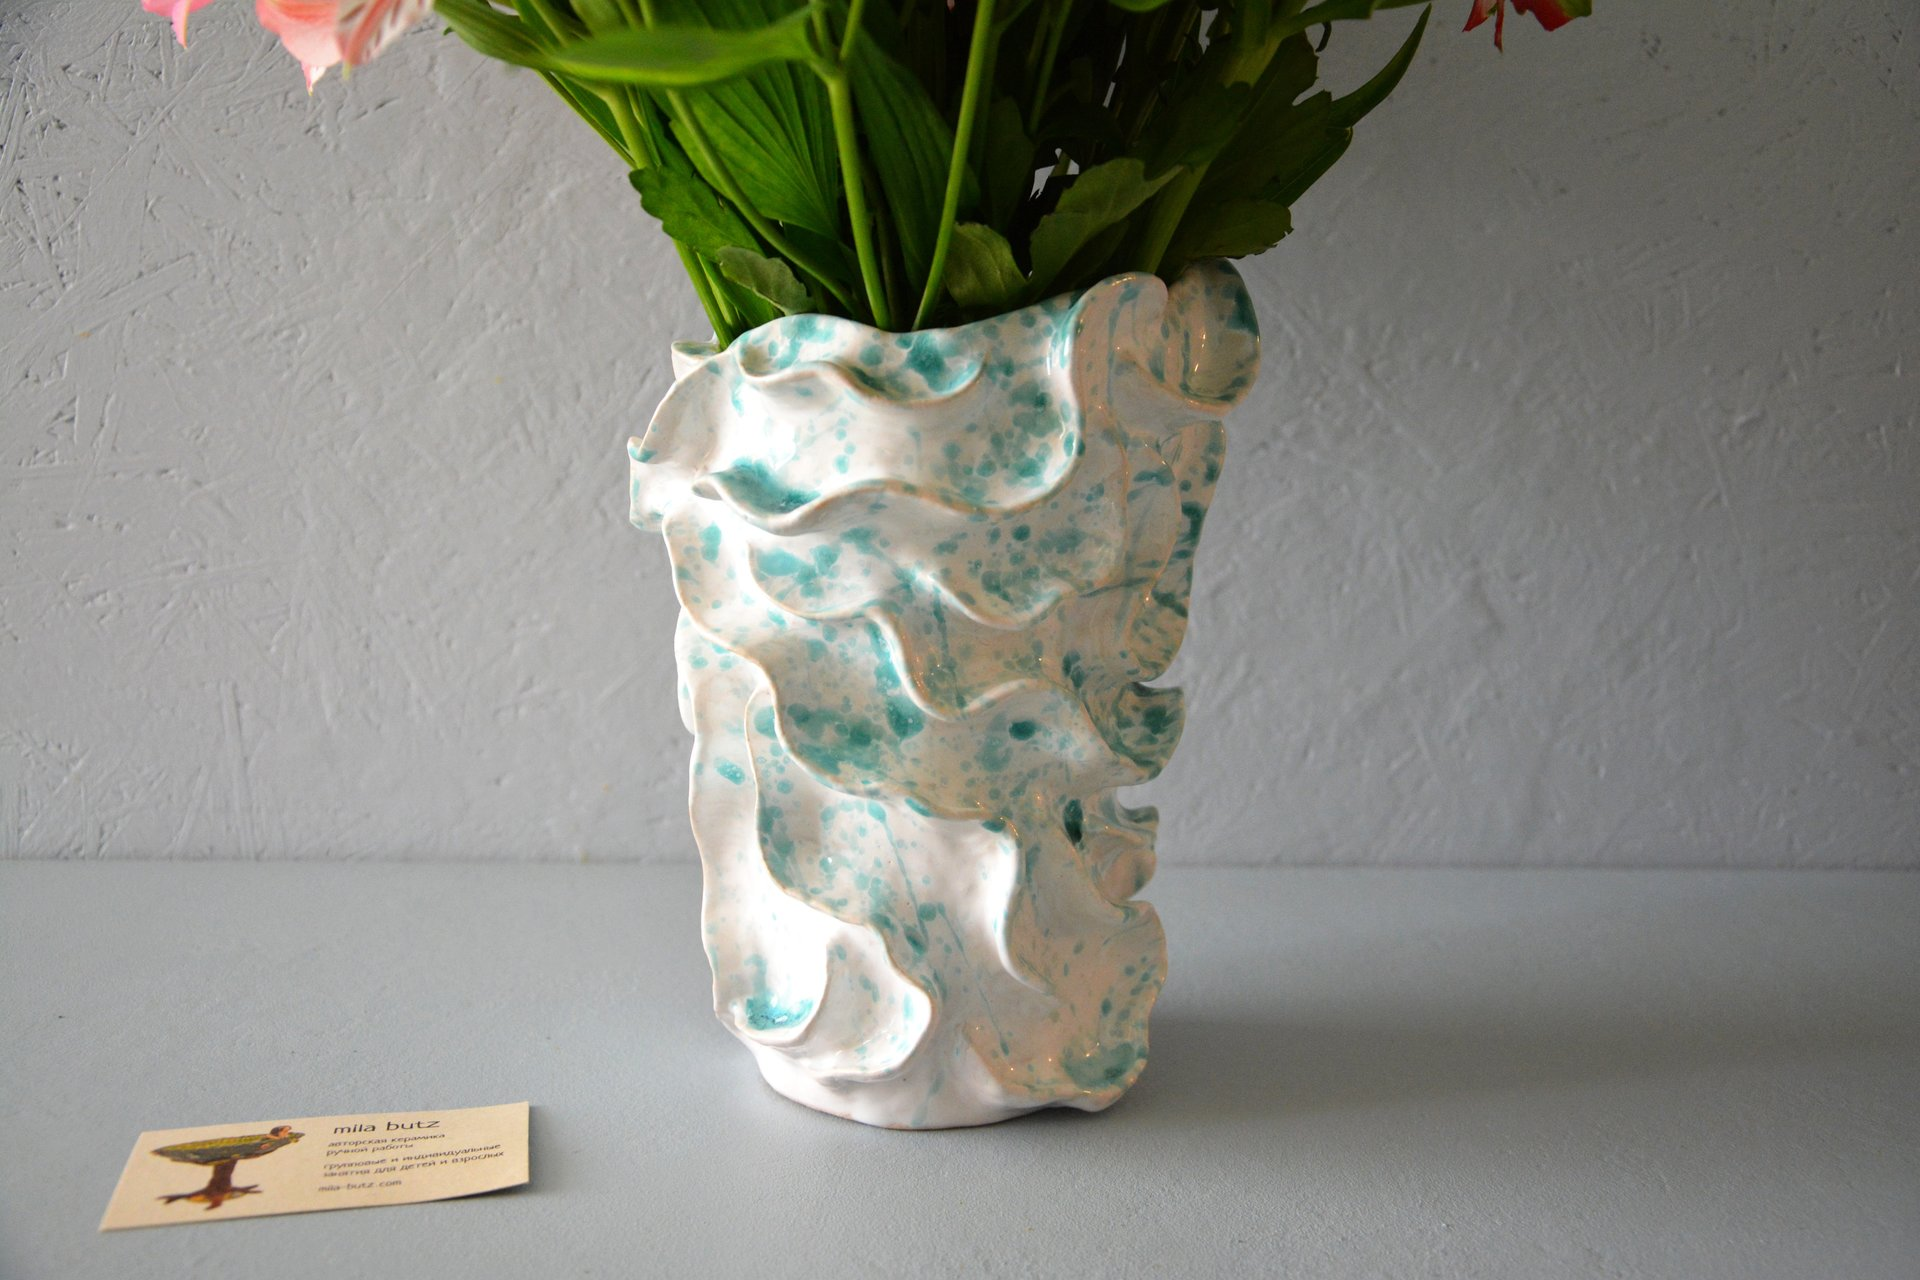 Decorative ceramic vase wave, height - 22 cm, photo 5 of 6. 609.